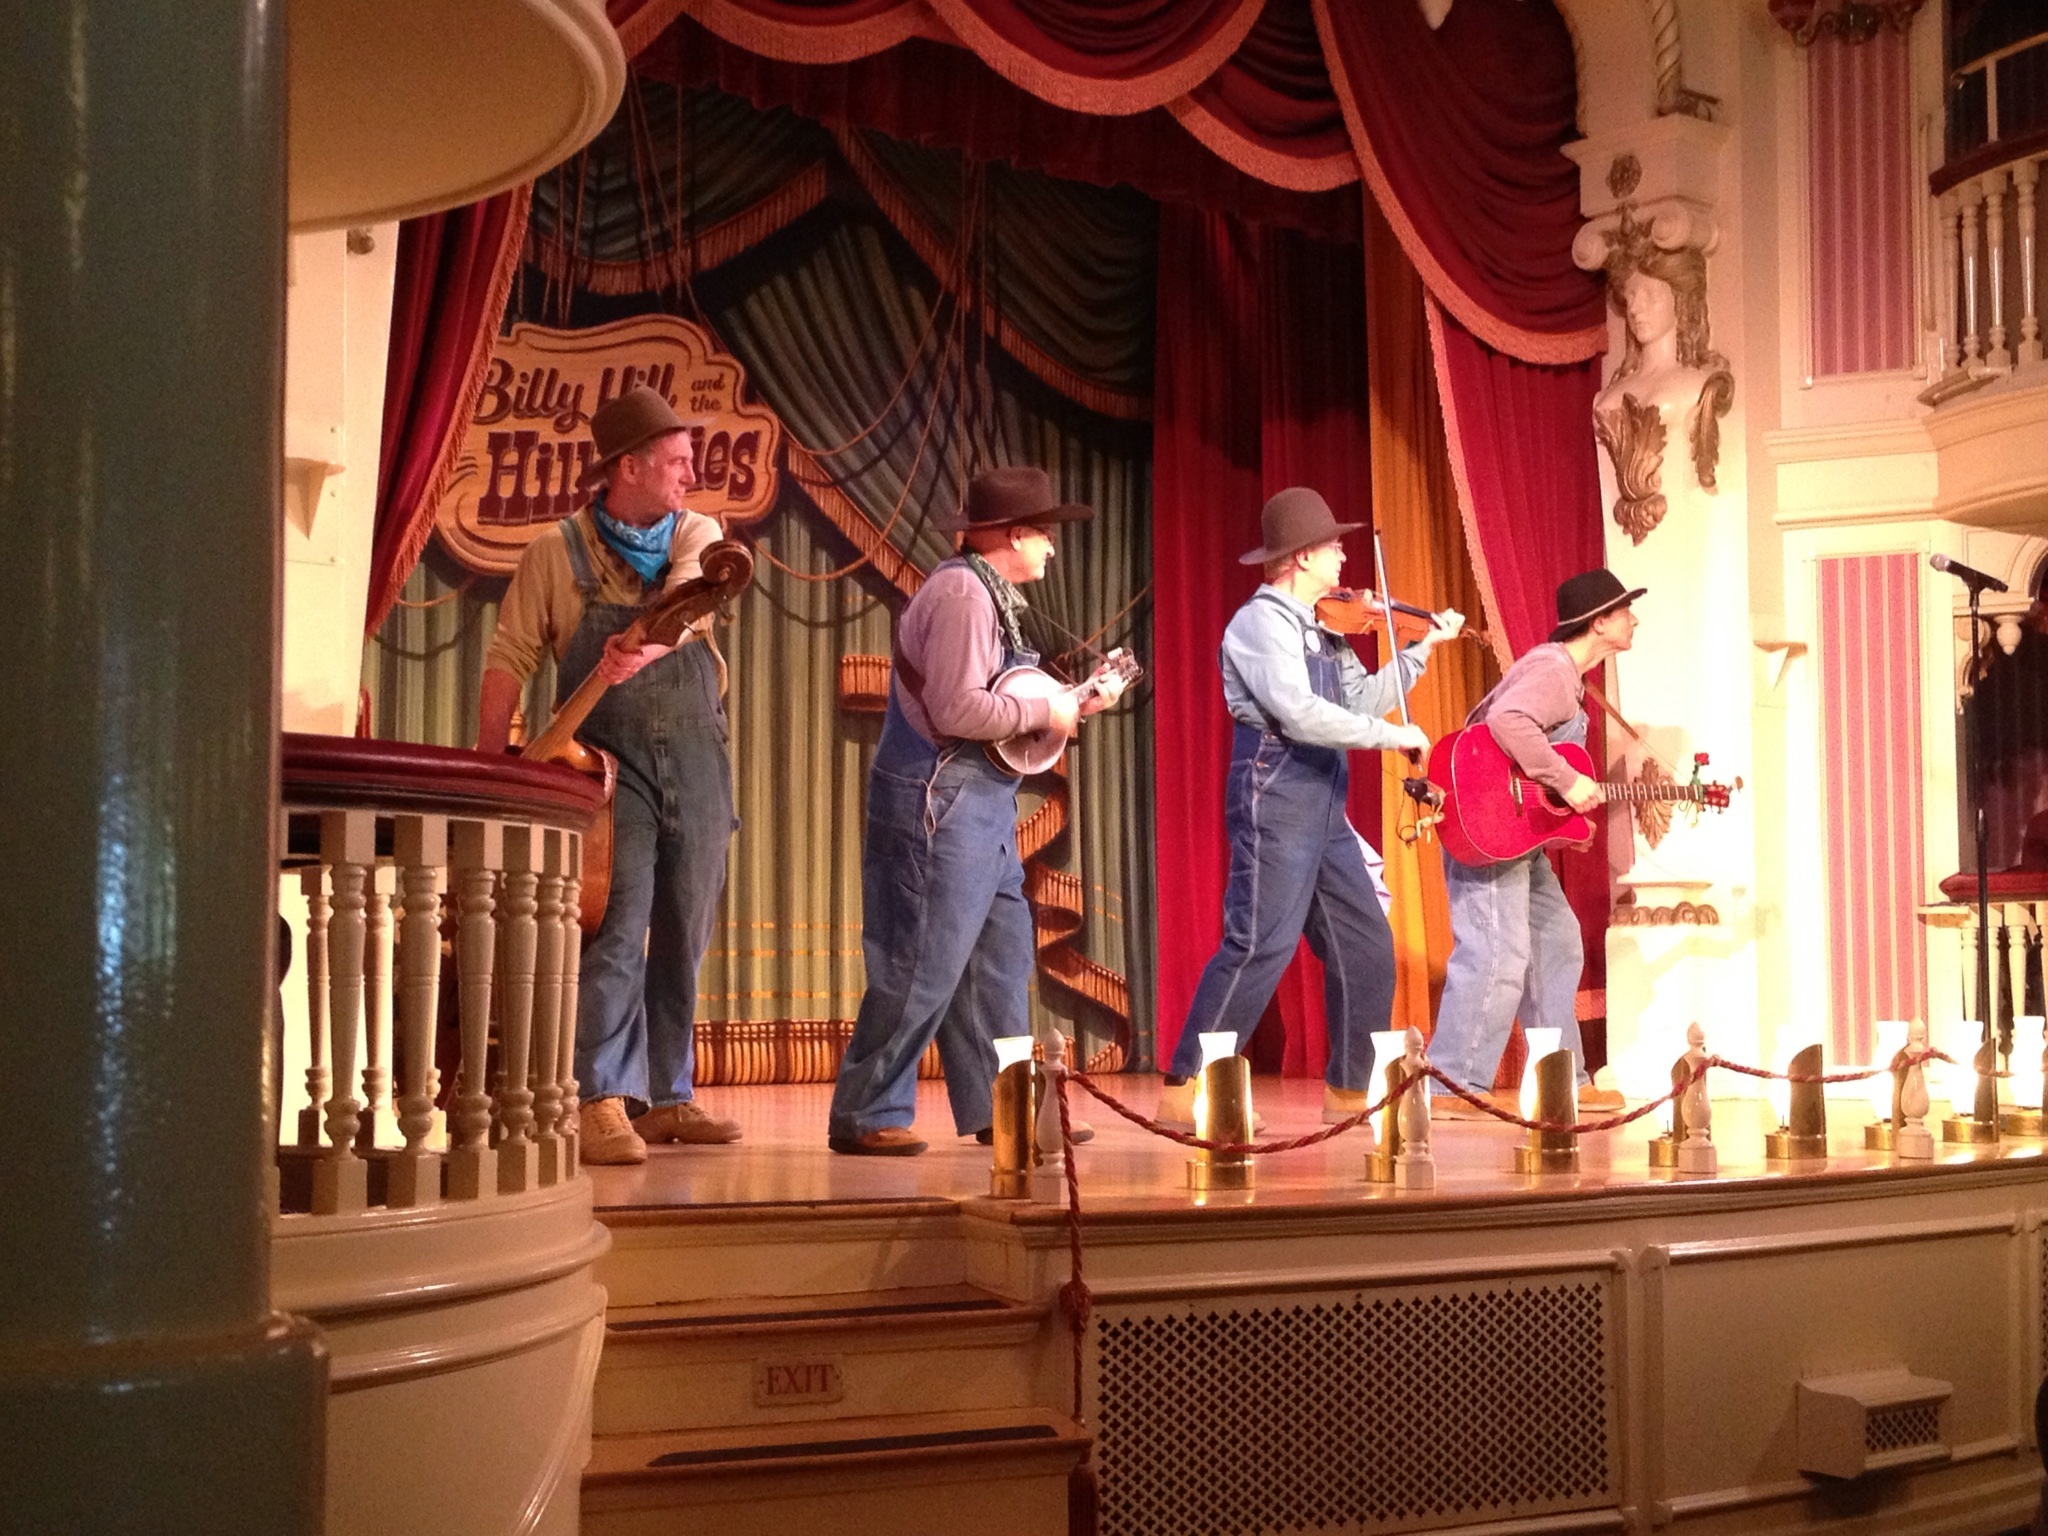 Disneyland Debate: Where Do Billy Hill and the Hillbillies